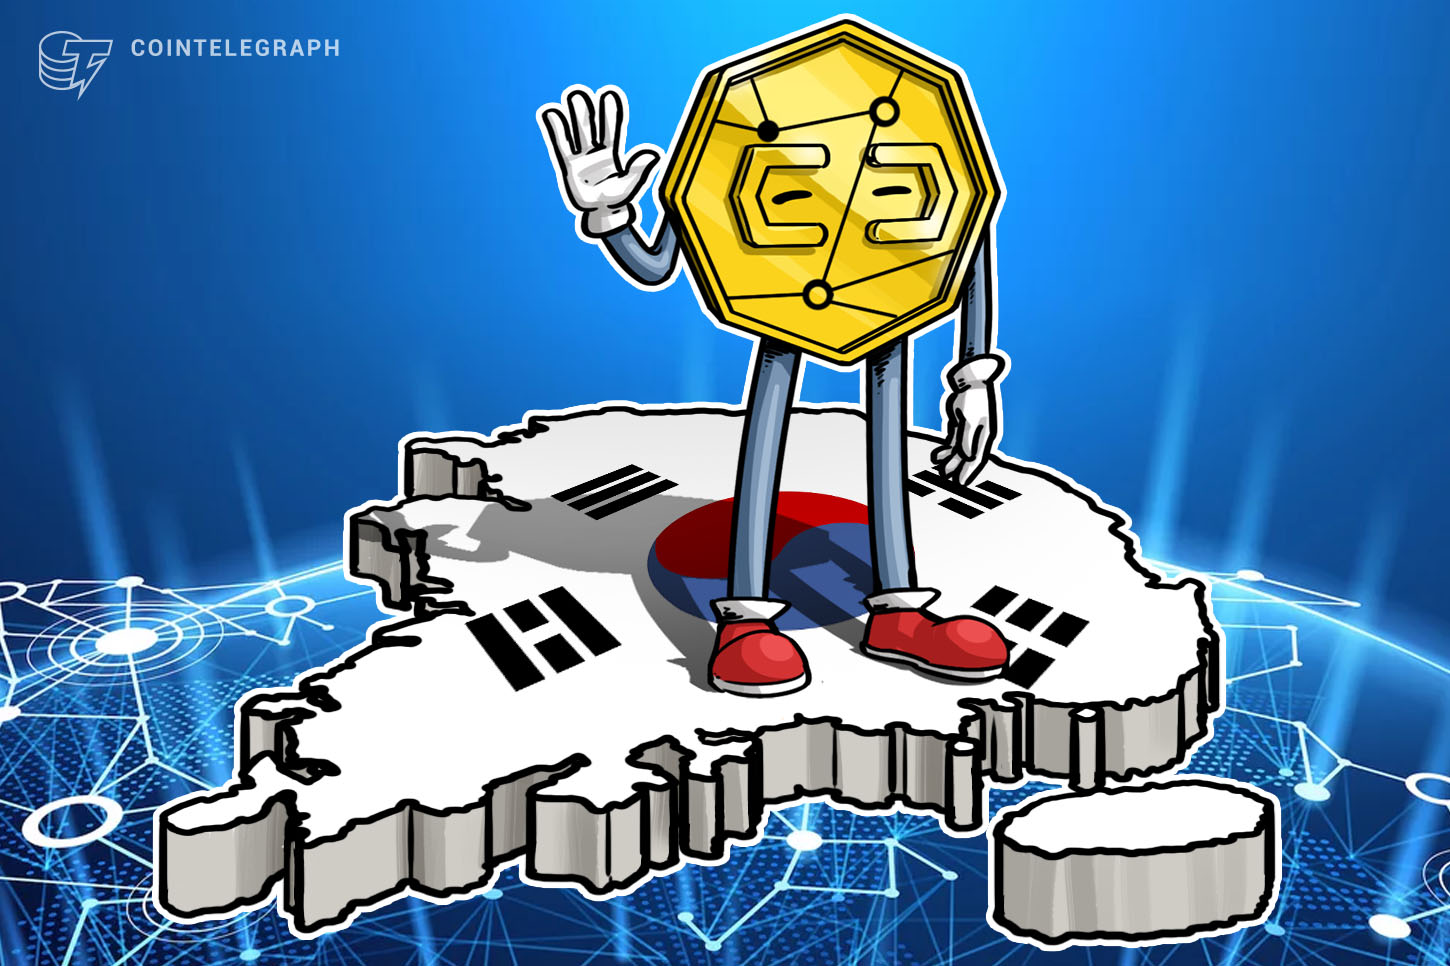 South Korean banks doubled crypto transaction fee revenue in Q2